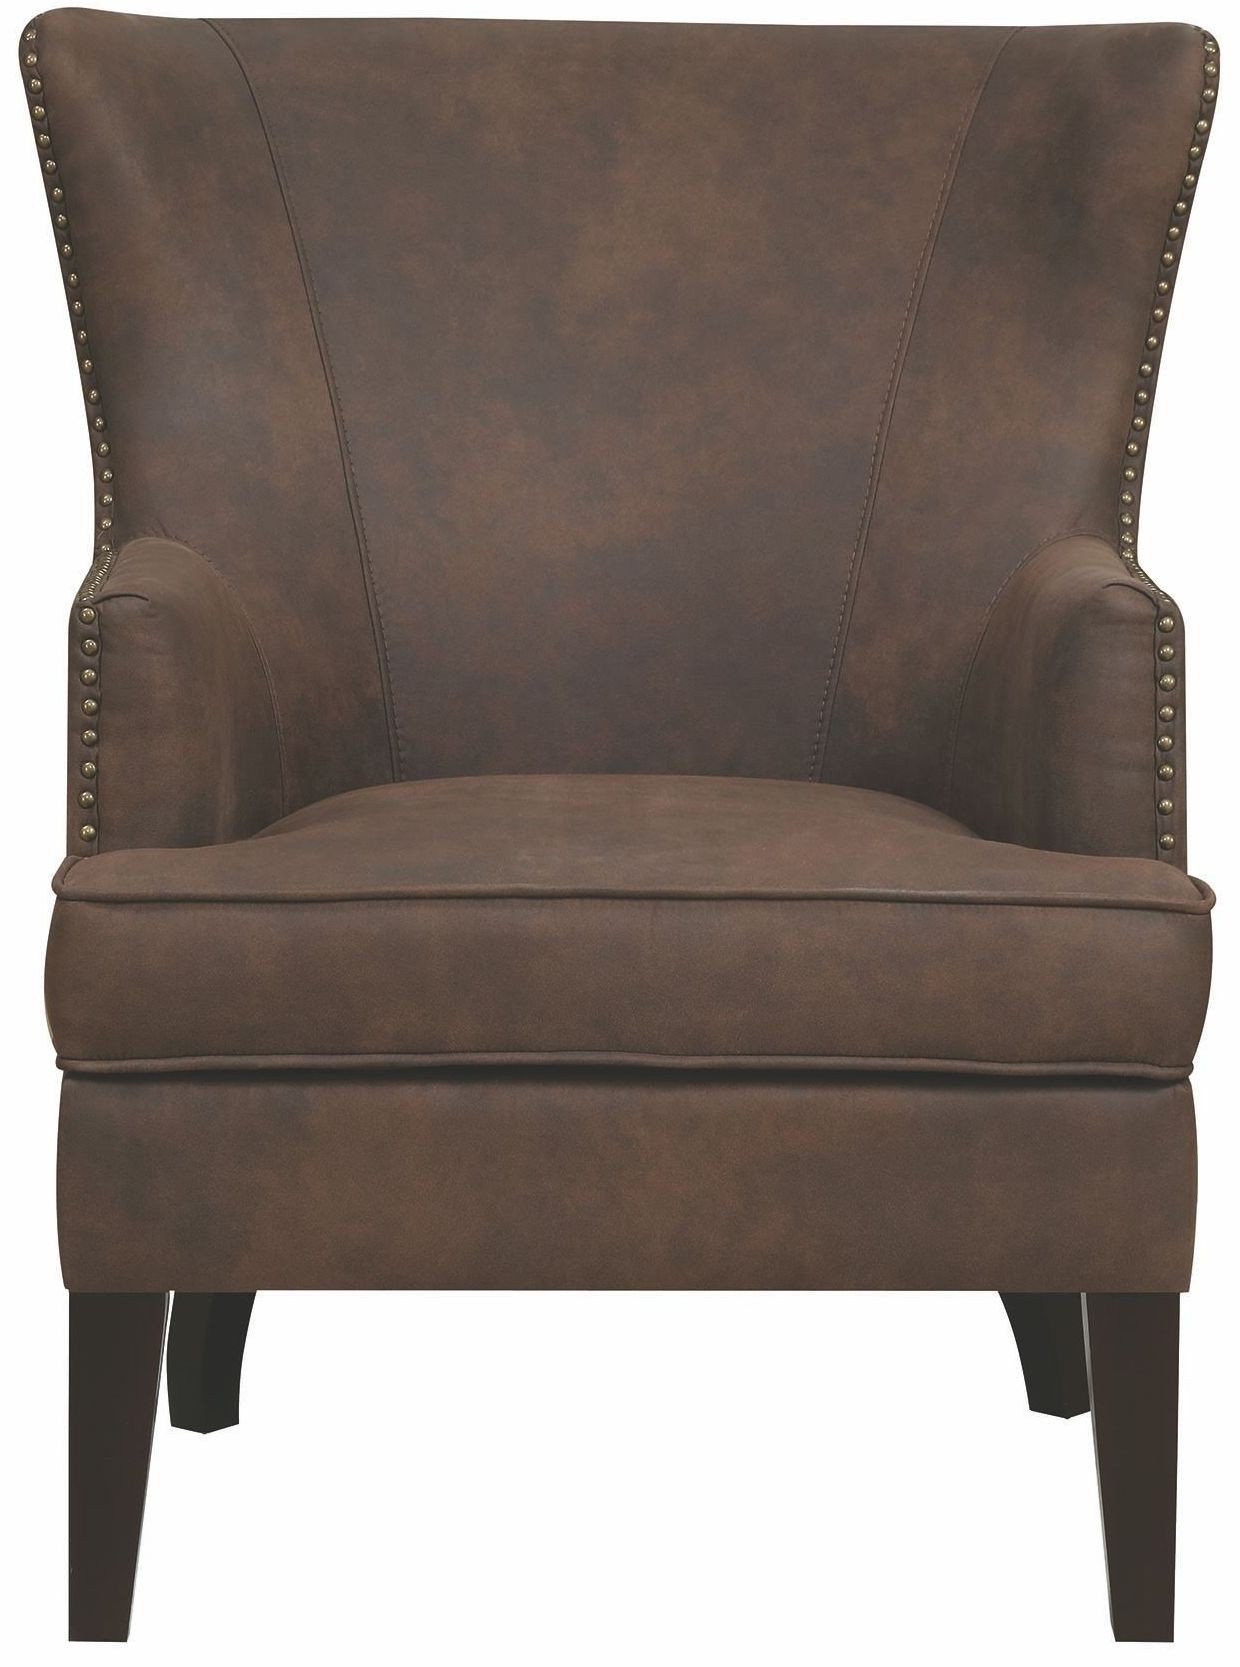 Brown Accent Chair 903817 Coaster Furniture